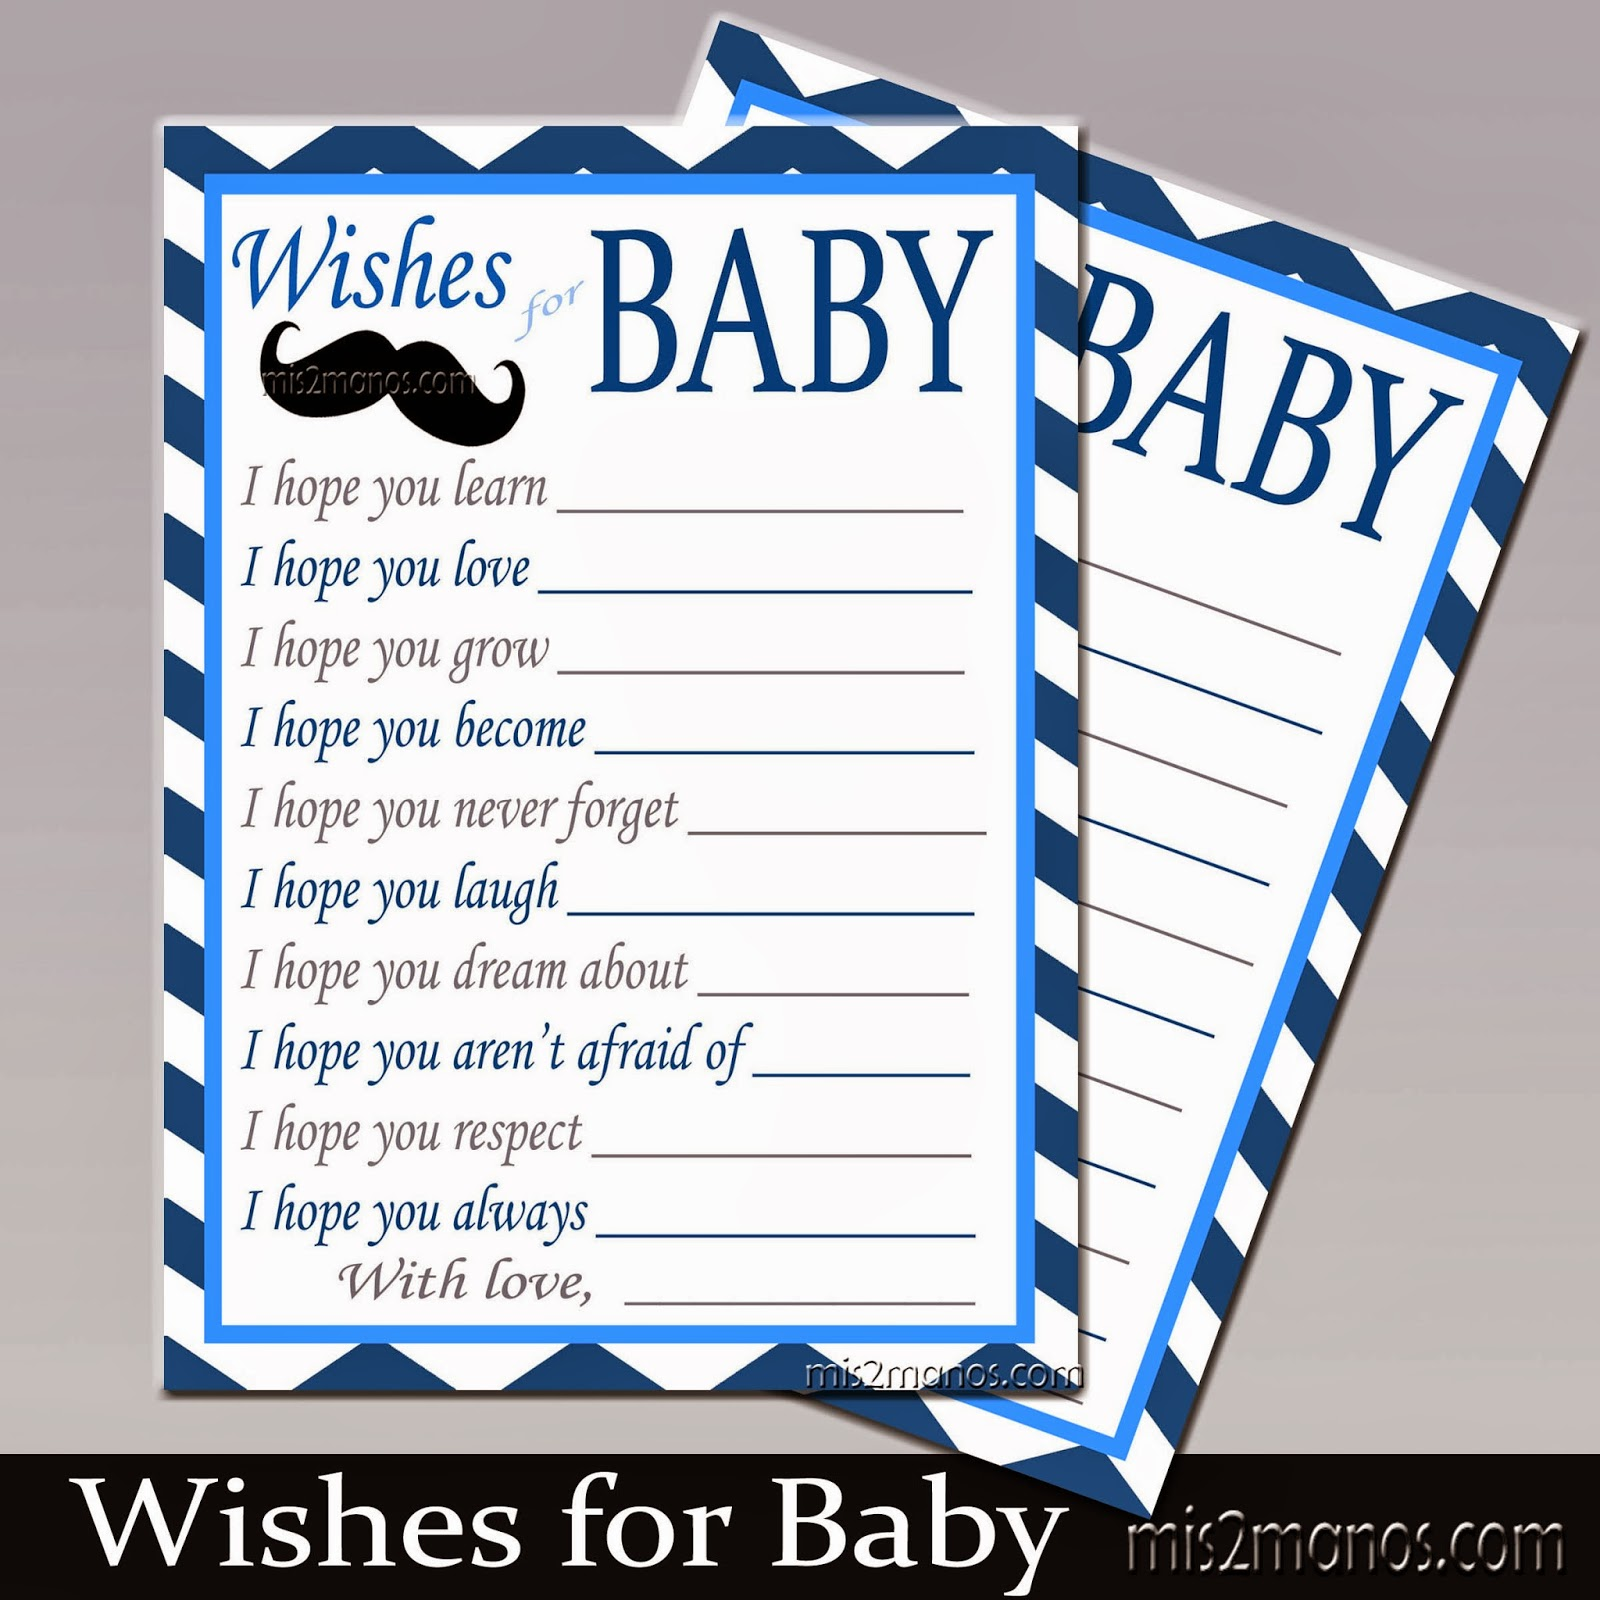 15 Awesome Wishes for Baby Template | Best Template